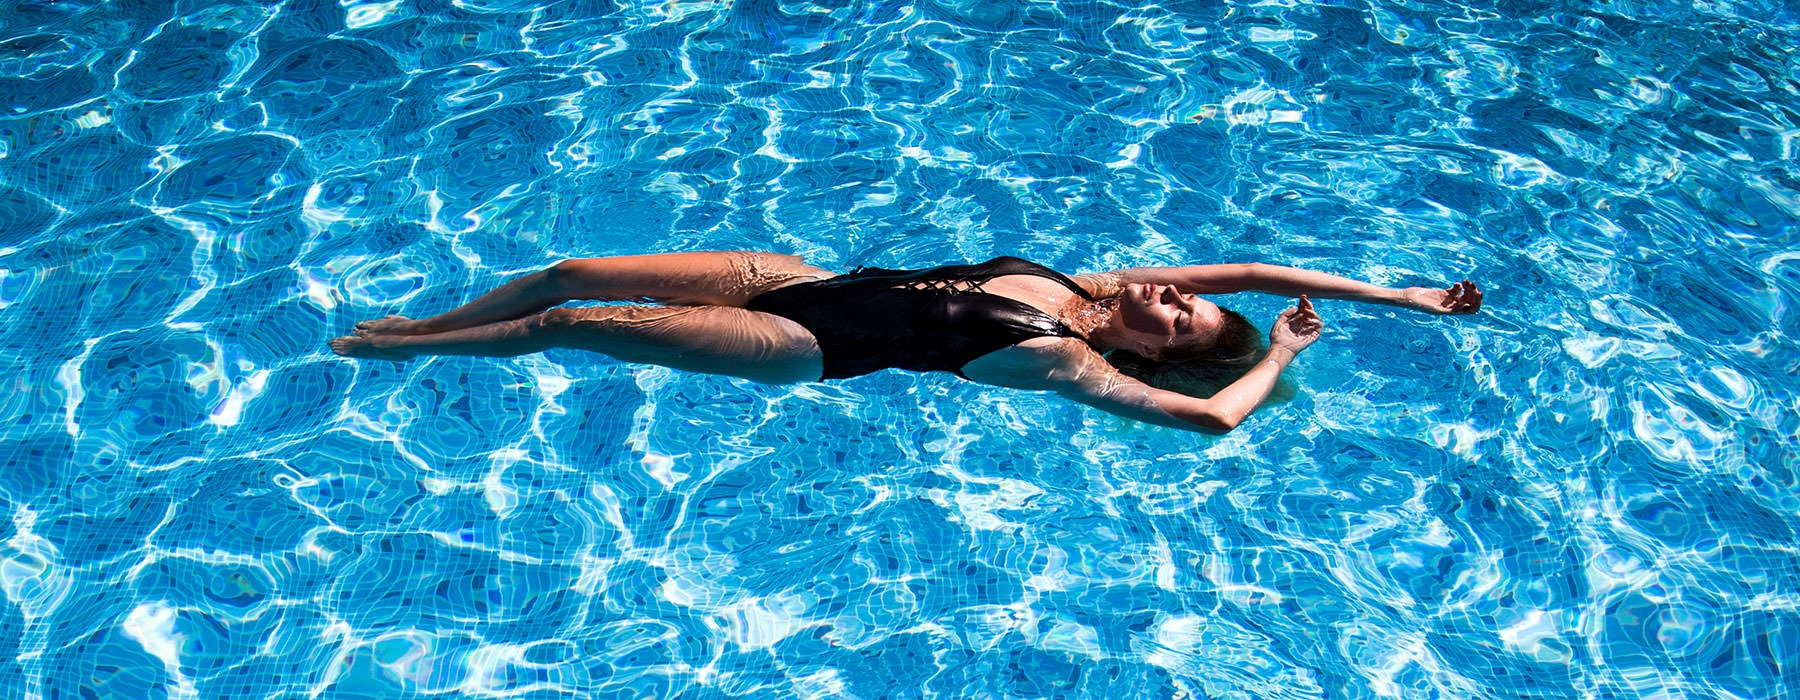 a lifestyle image of a woman sunbathing in the middle of a bright swimming pool